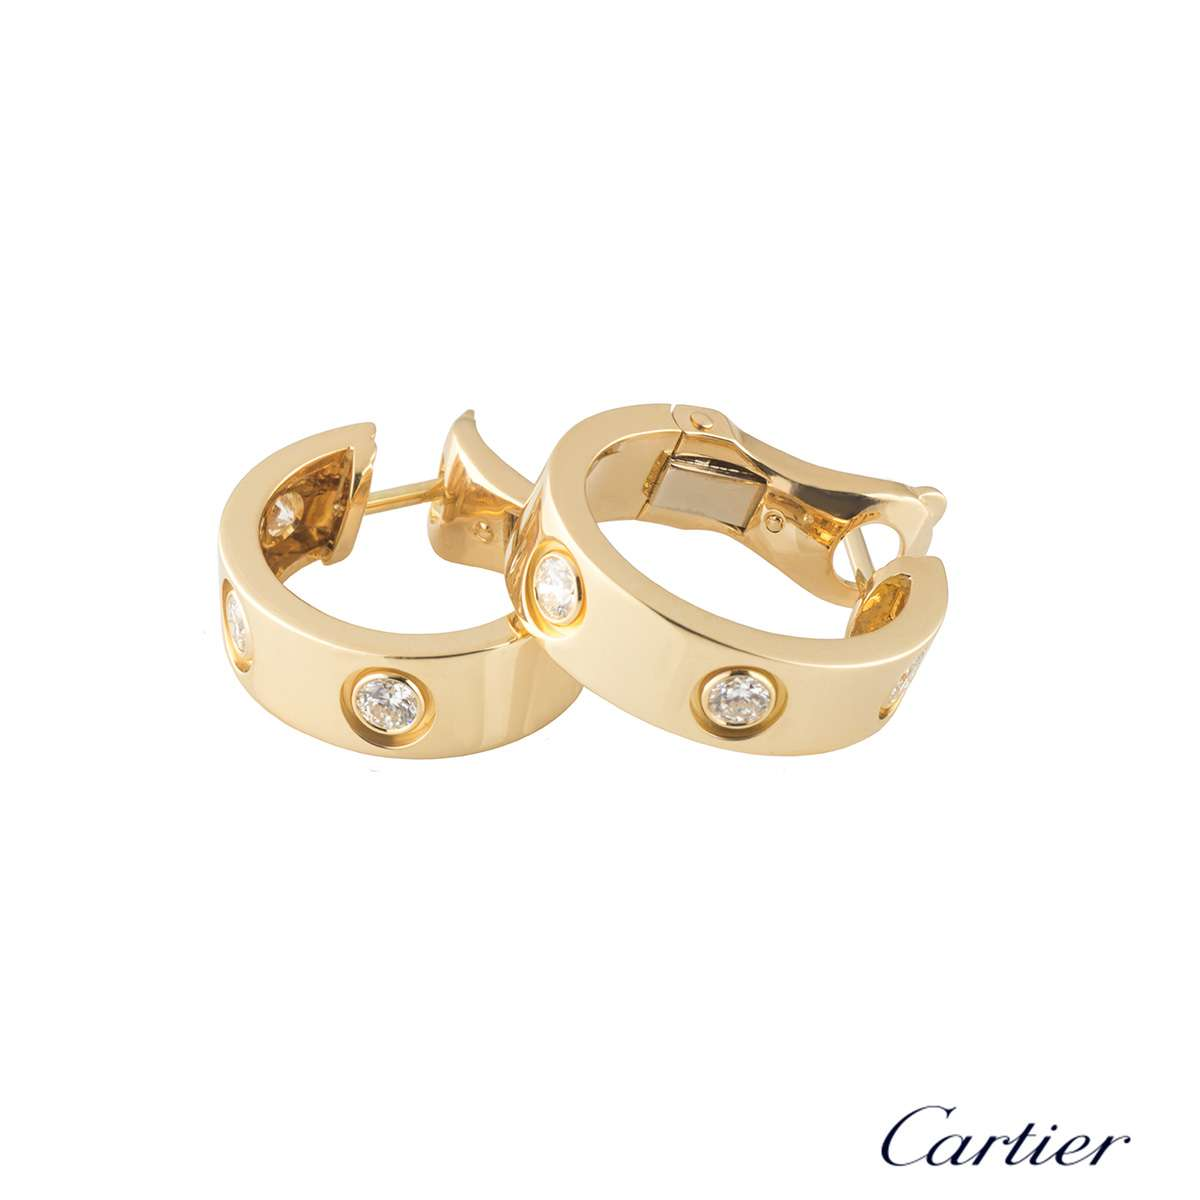 Cartier Yellow Gold Diamond Love Hoop Earrings